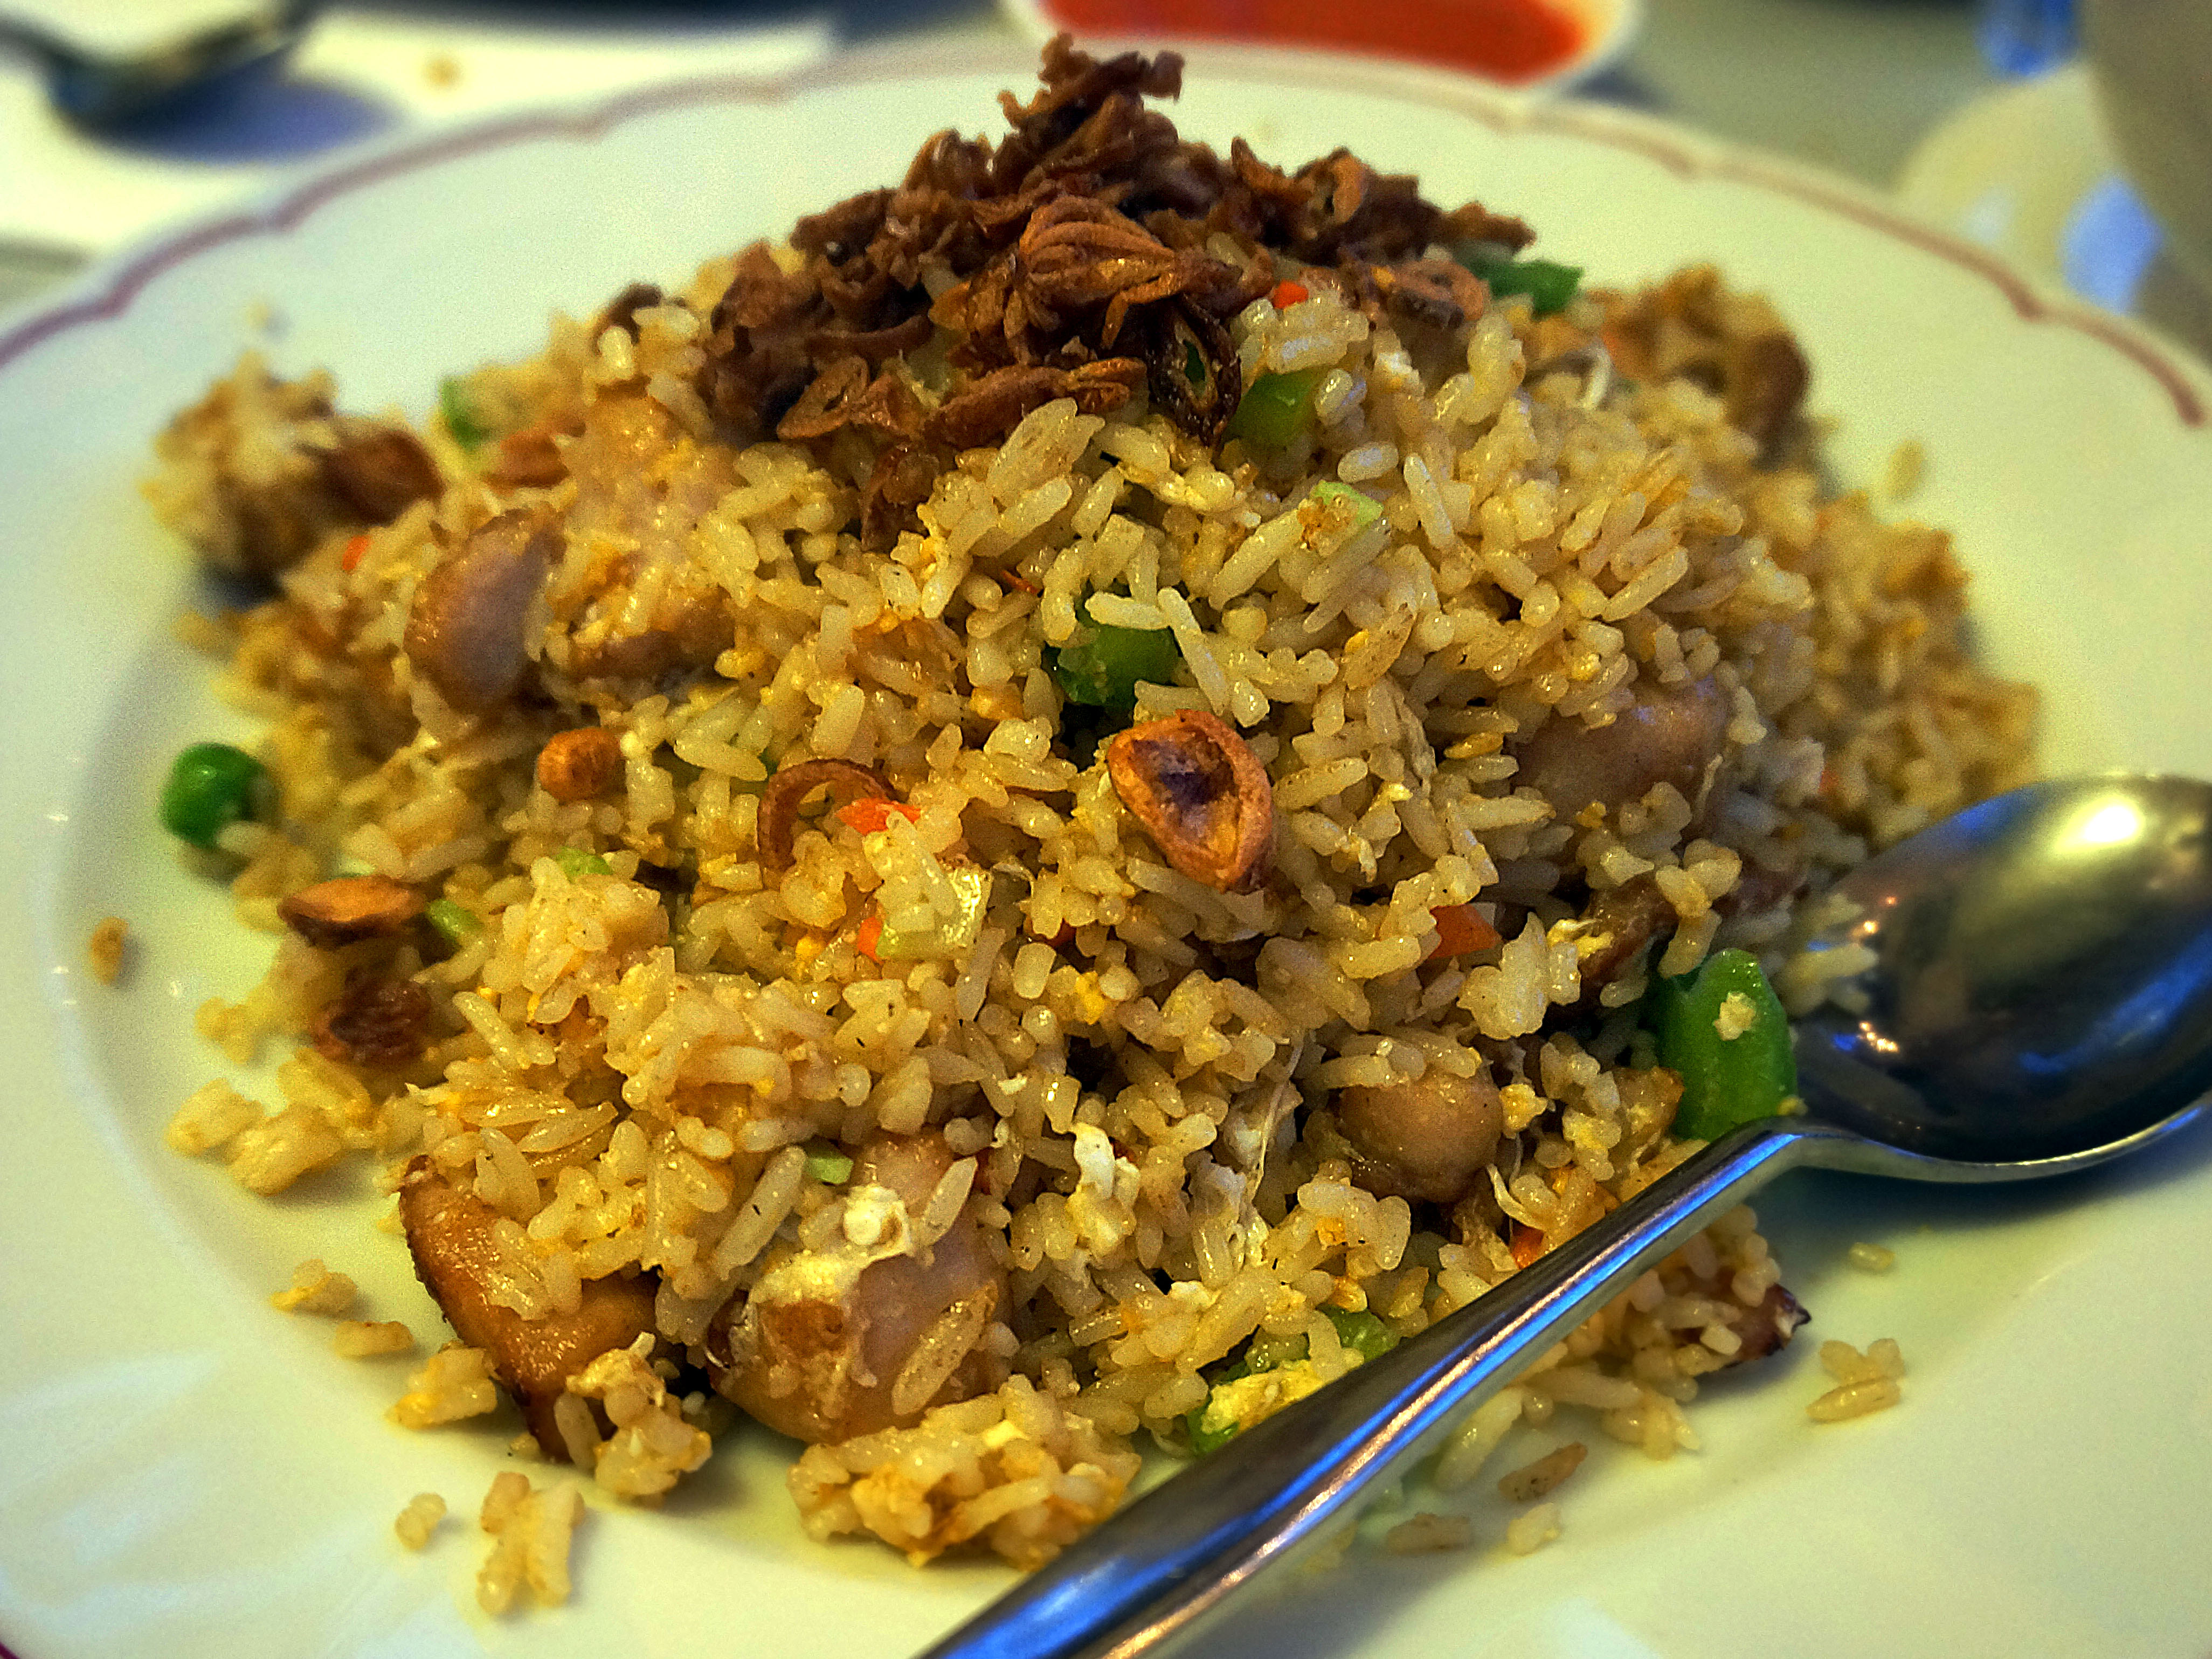 Old Fatty's Chicken Fried Rice - 'An old colonial fried rice with diced chicken, peas, carrots & eggs' {$12}